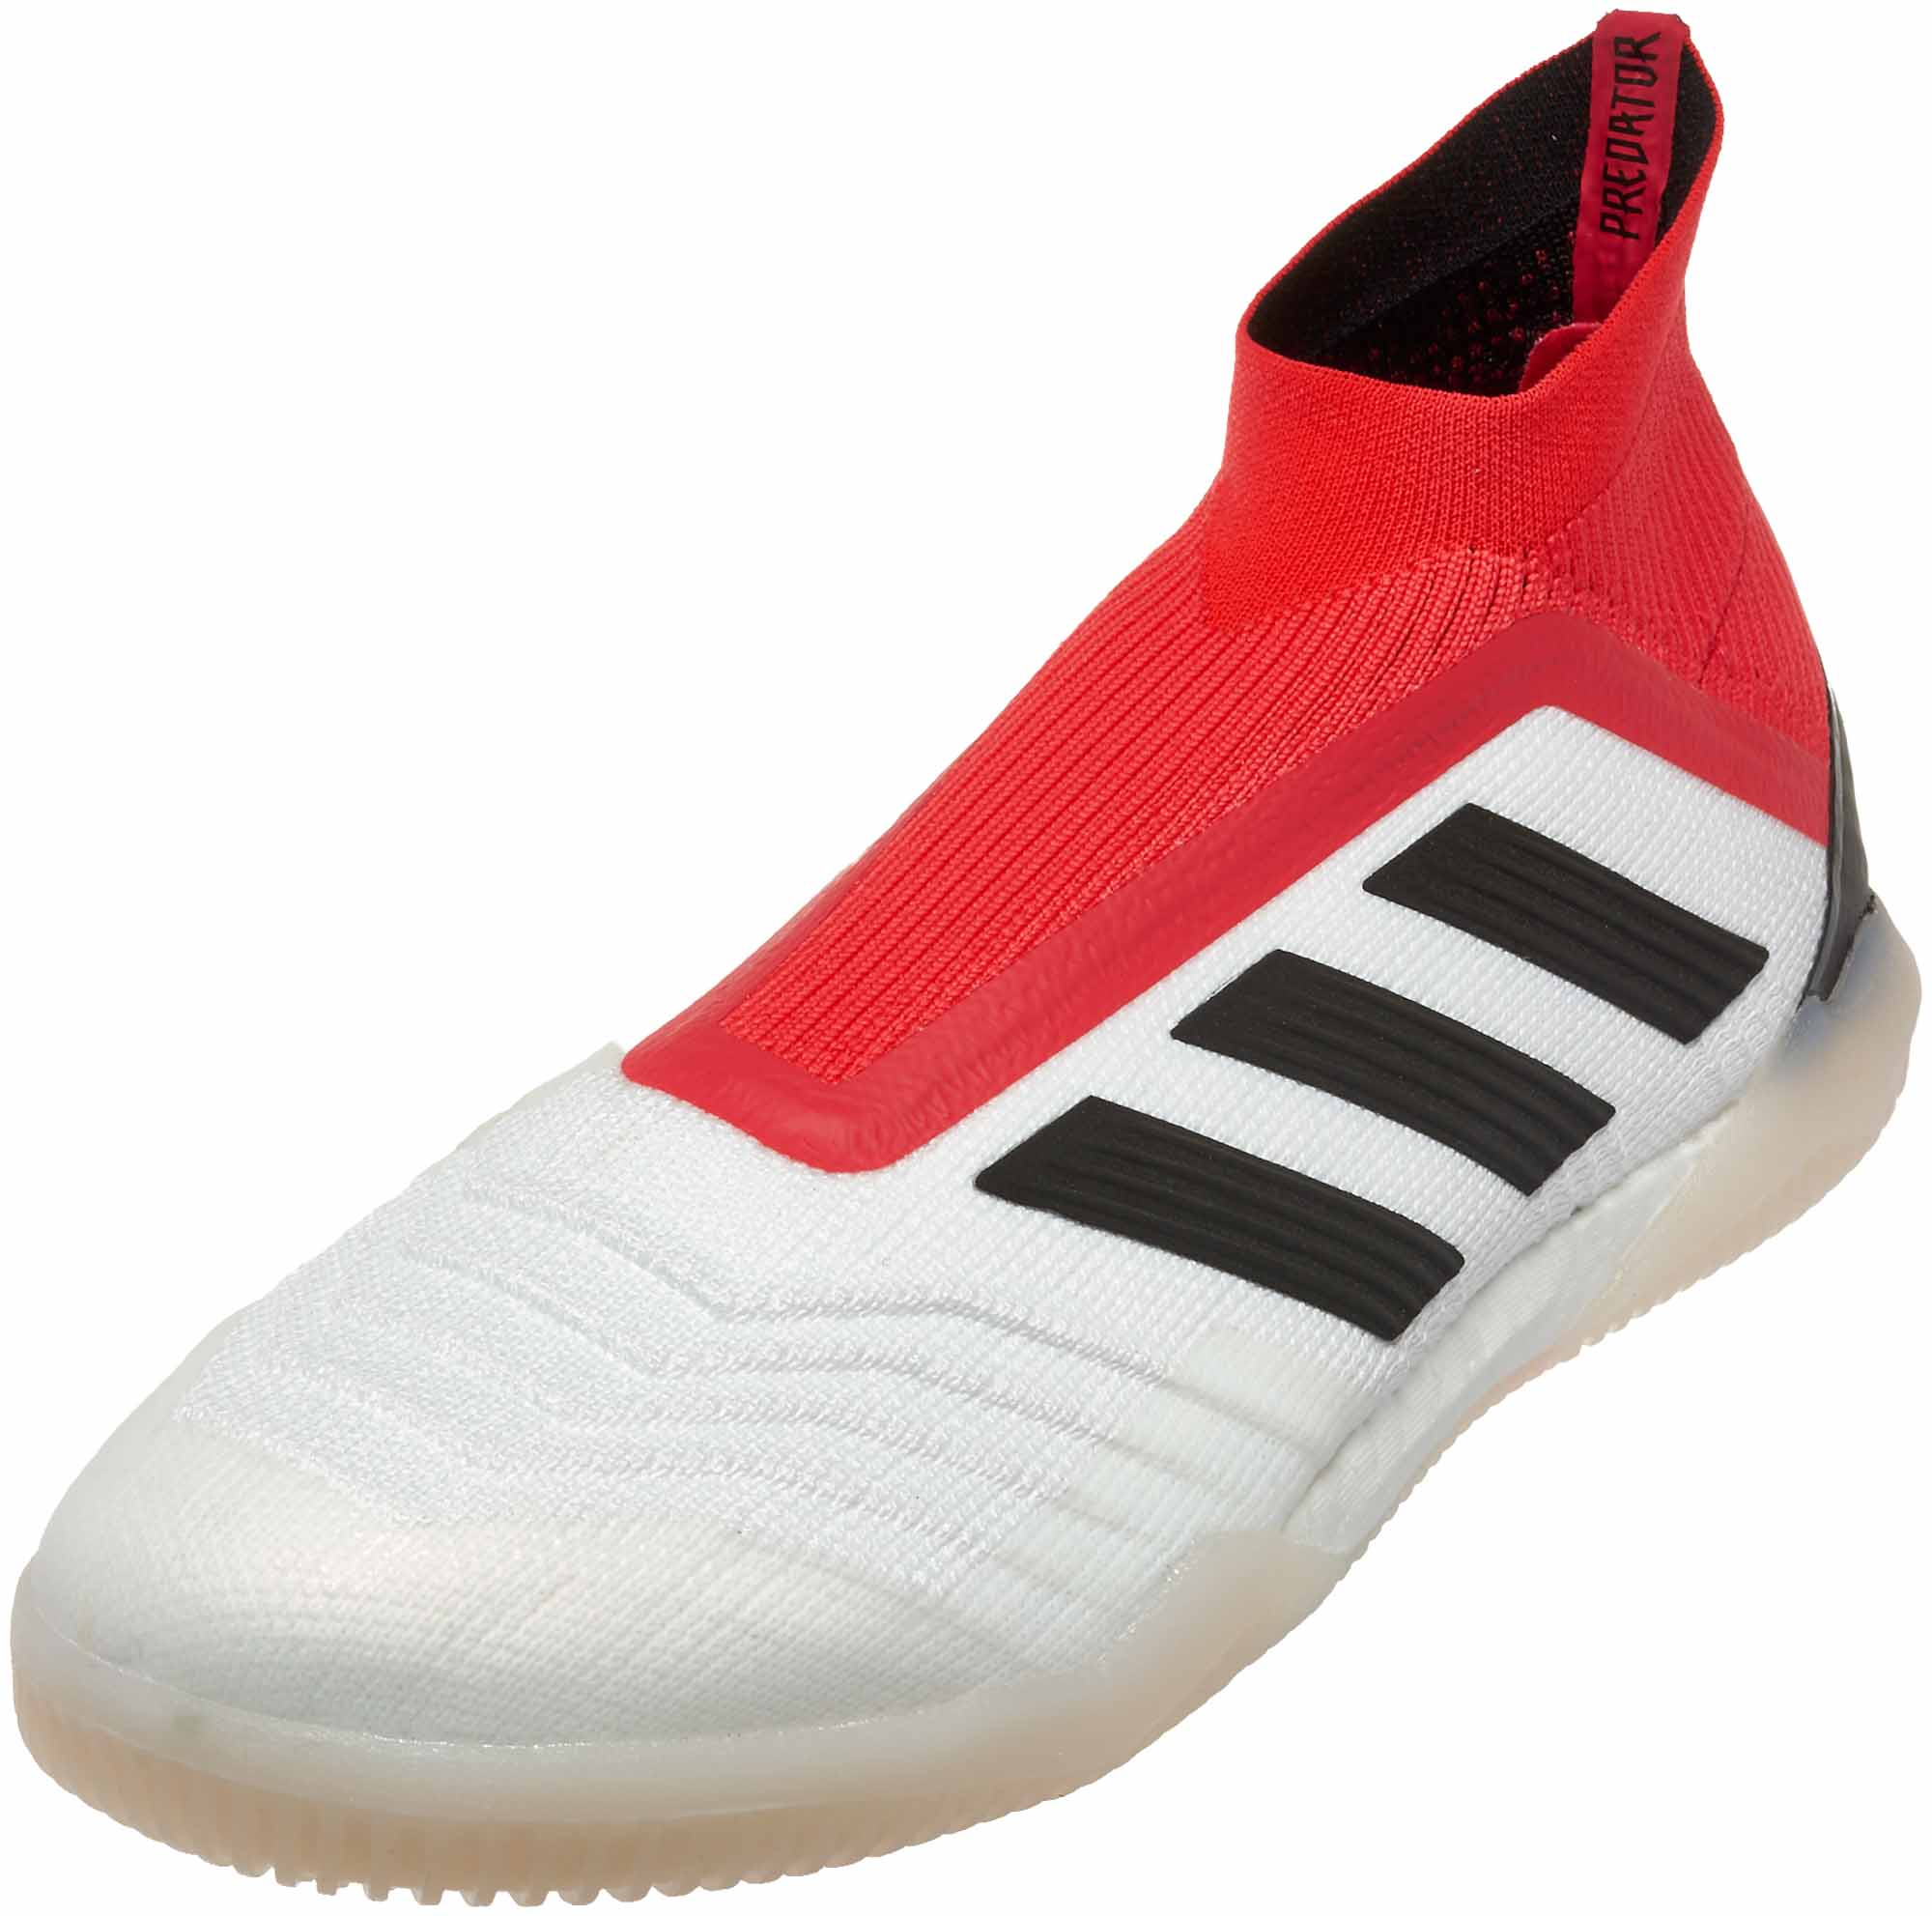 c4a7329349c7 adidas Predator 18 Indoor Soccer Shoes - Cold Blooded Pack